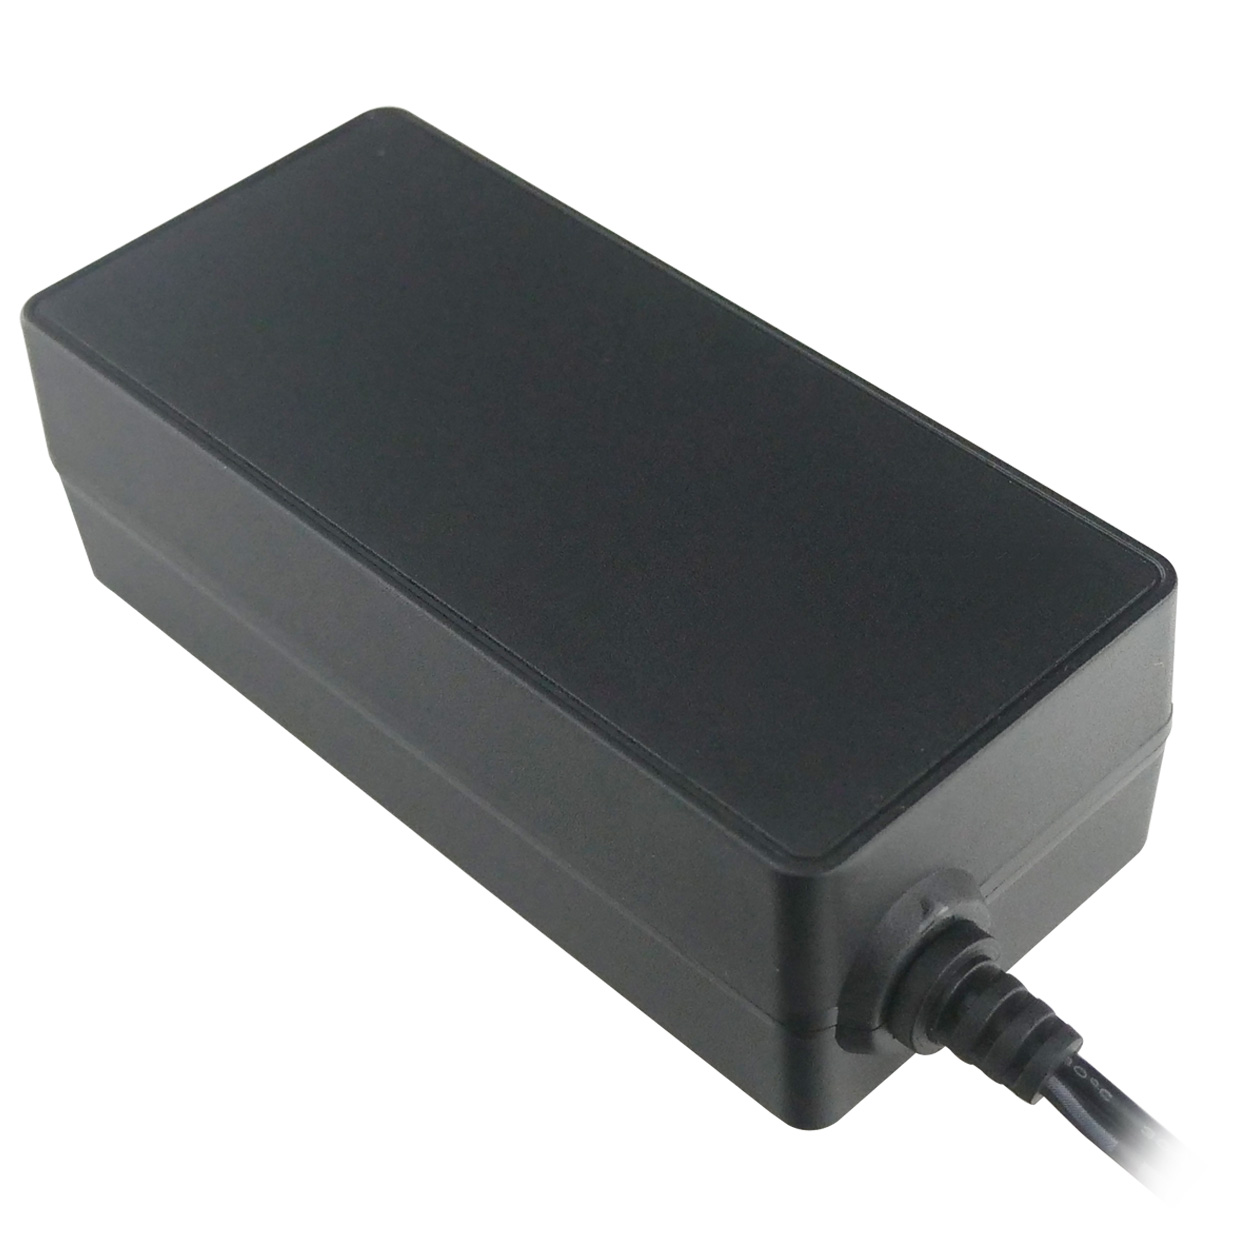 12V DC 4000mA Output Power Switching Adapter, (100-240V AC Input, 2 1mm ID  / 5 5mm OD) - Regulated